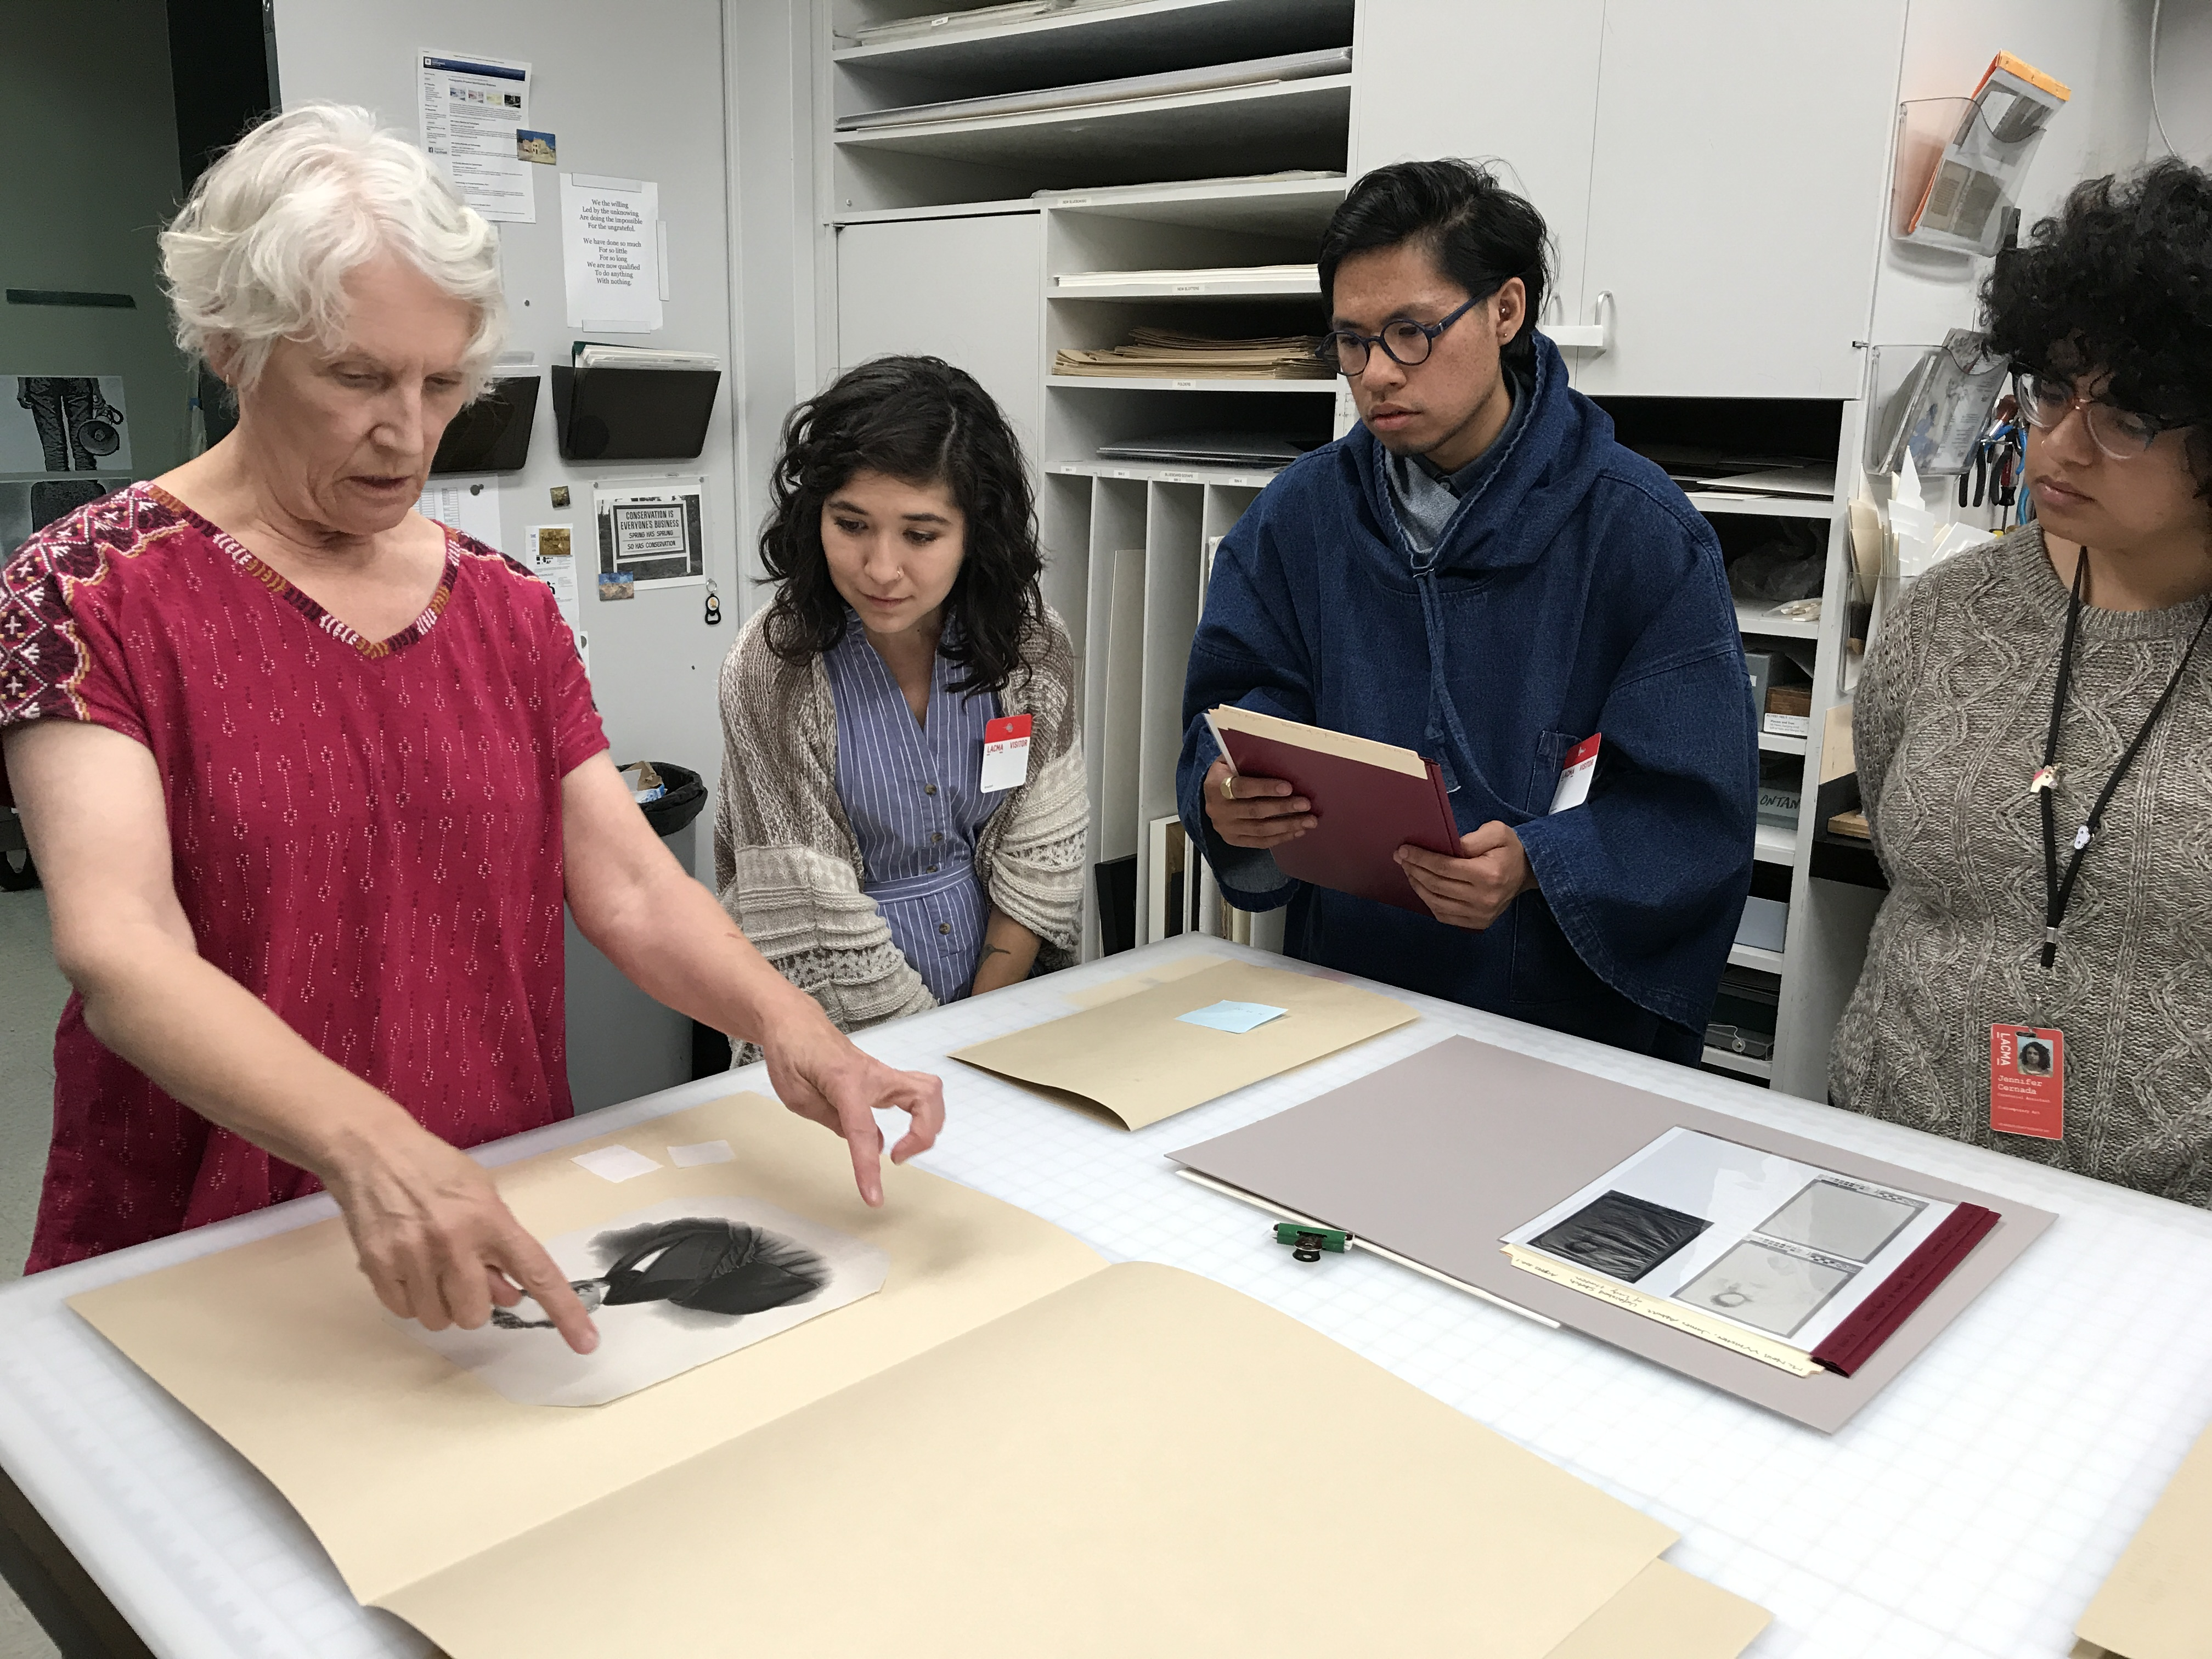 From left: Senior Paper Conservator Janice Schopfer and LACMA-ASU Fellows Ariana Enriquez, Matthew Miranda, and Jennifer Cernada in LACMA's Conservation Lab